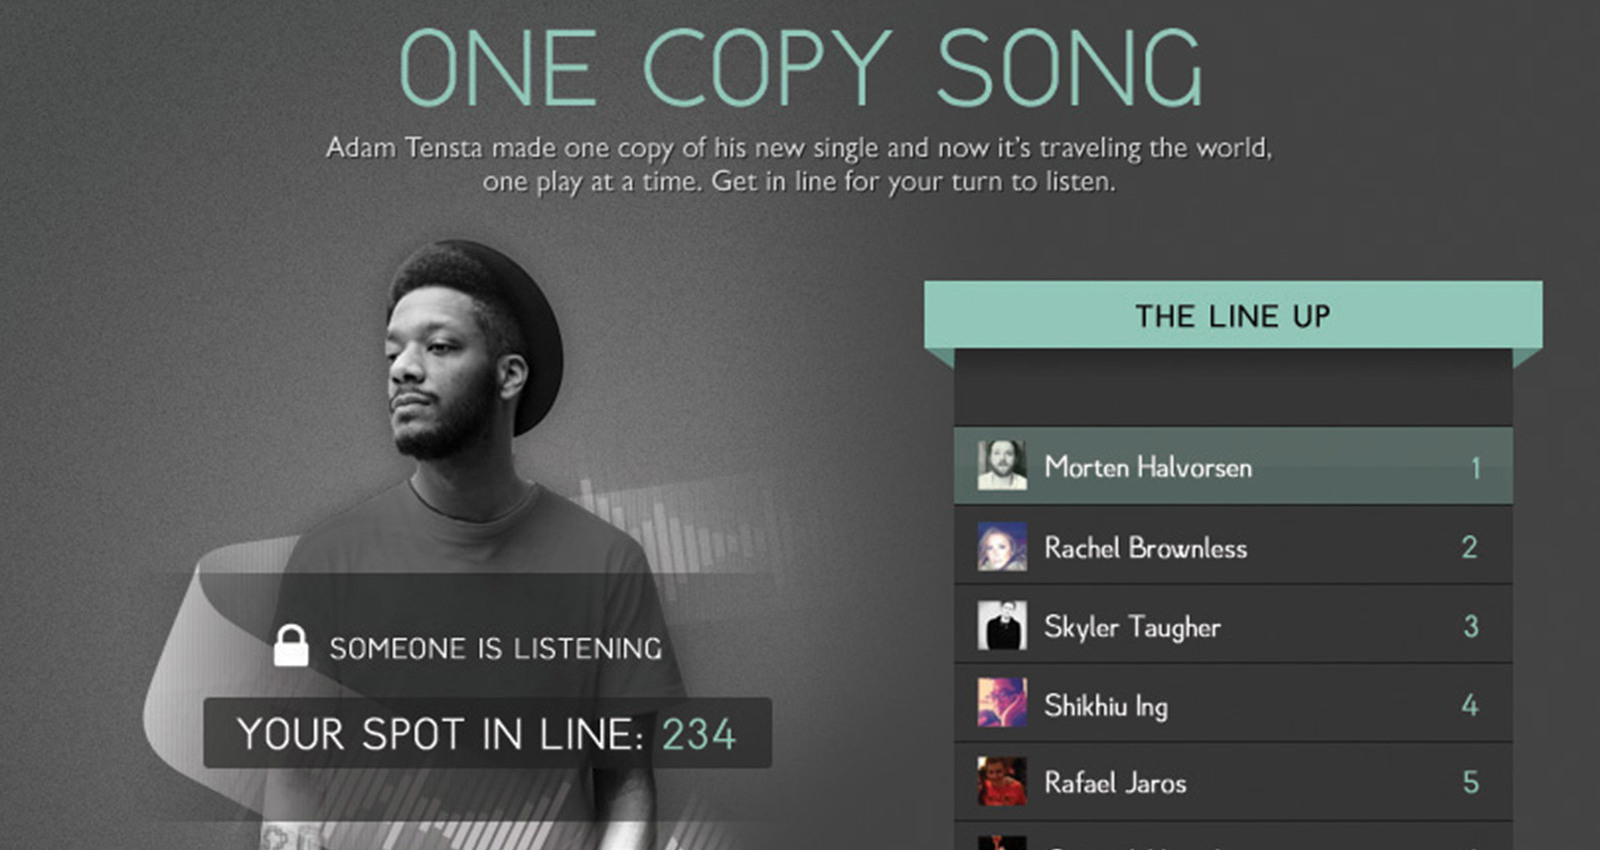 One Copy Song